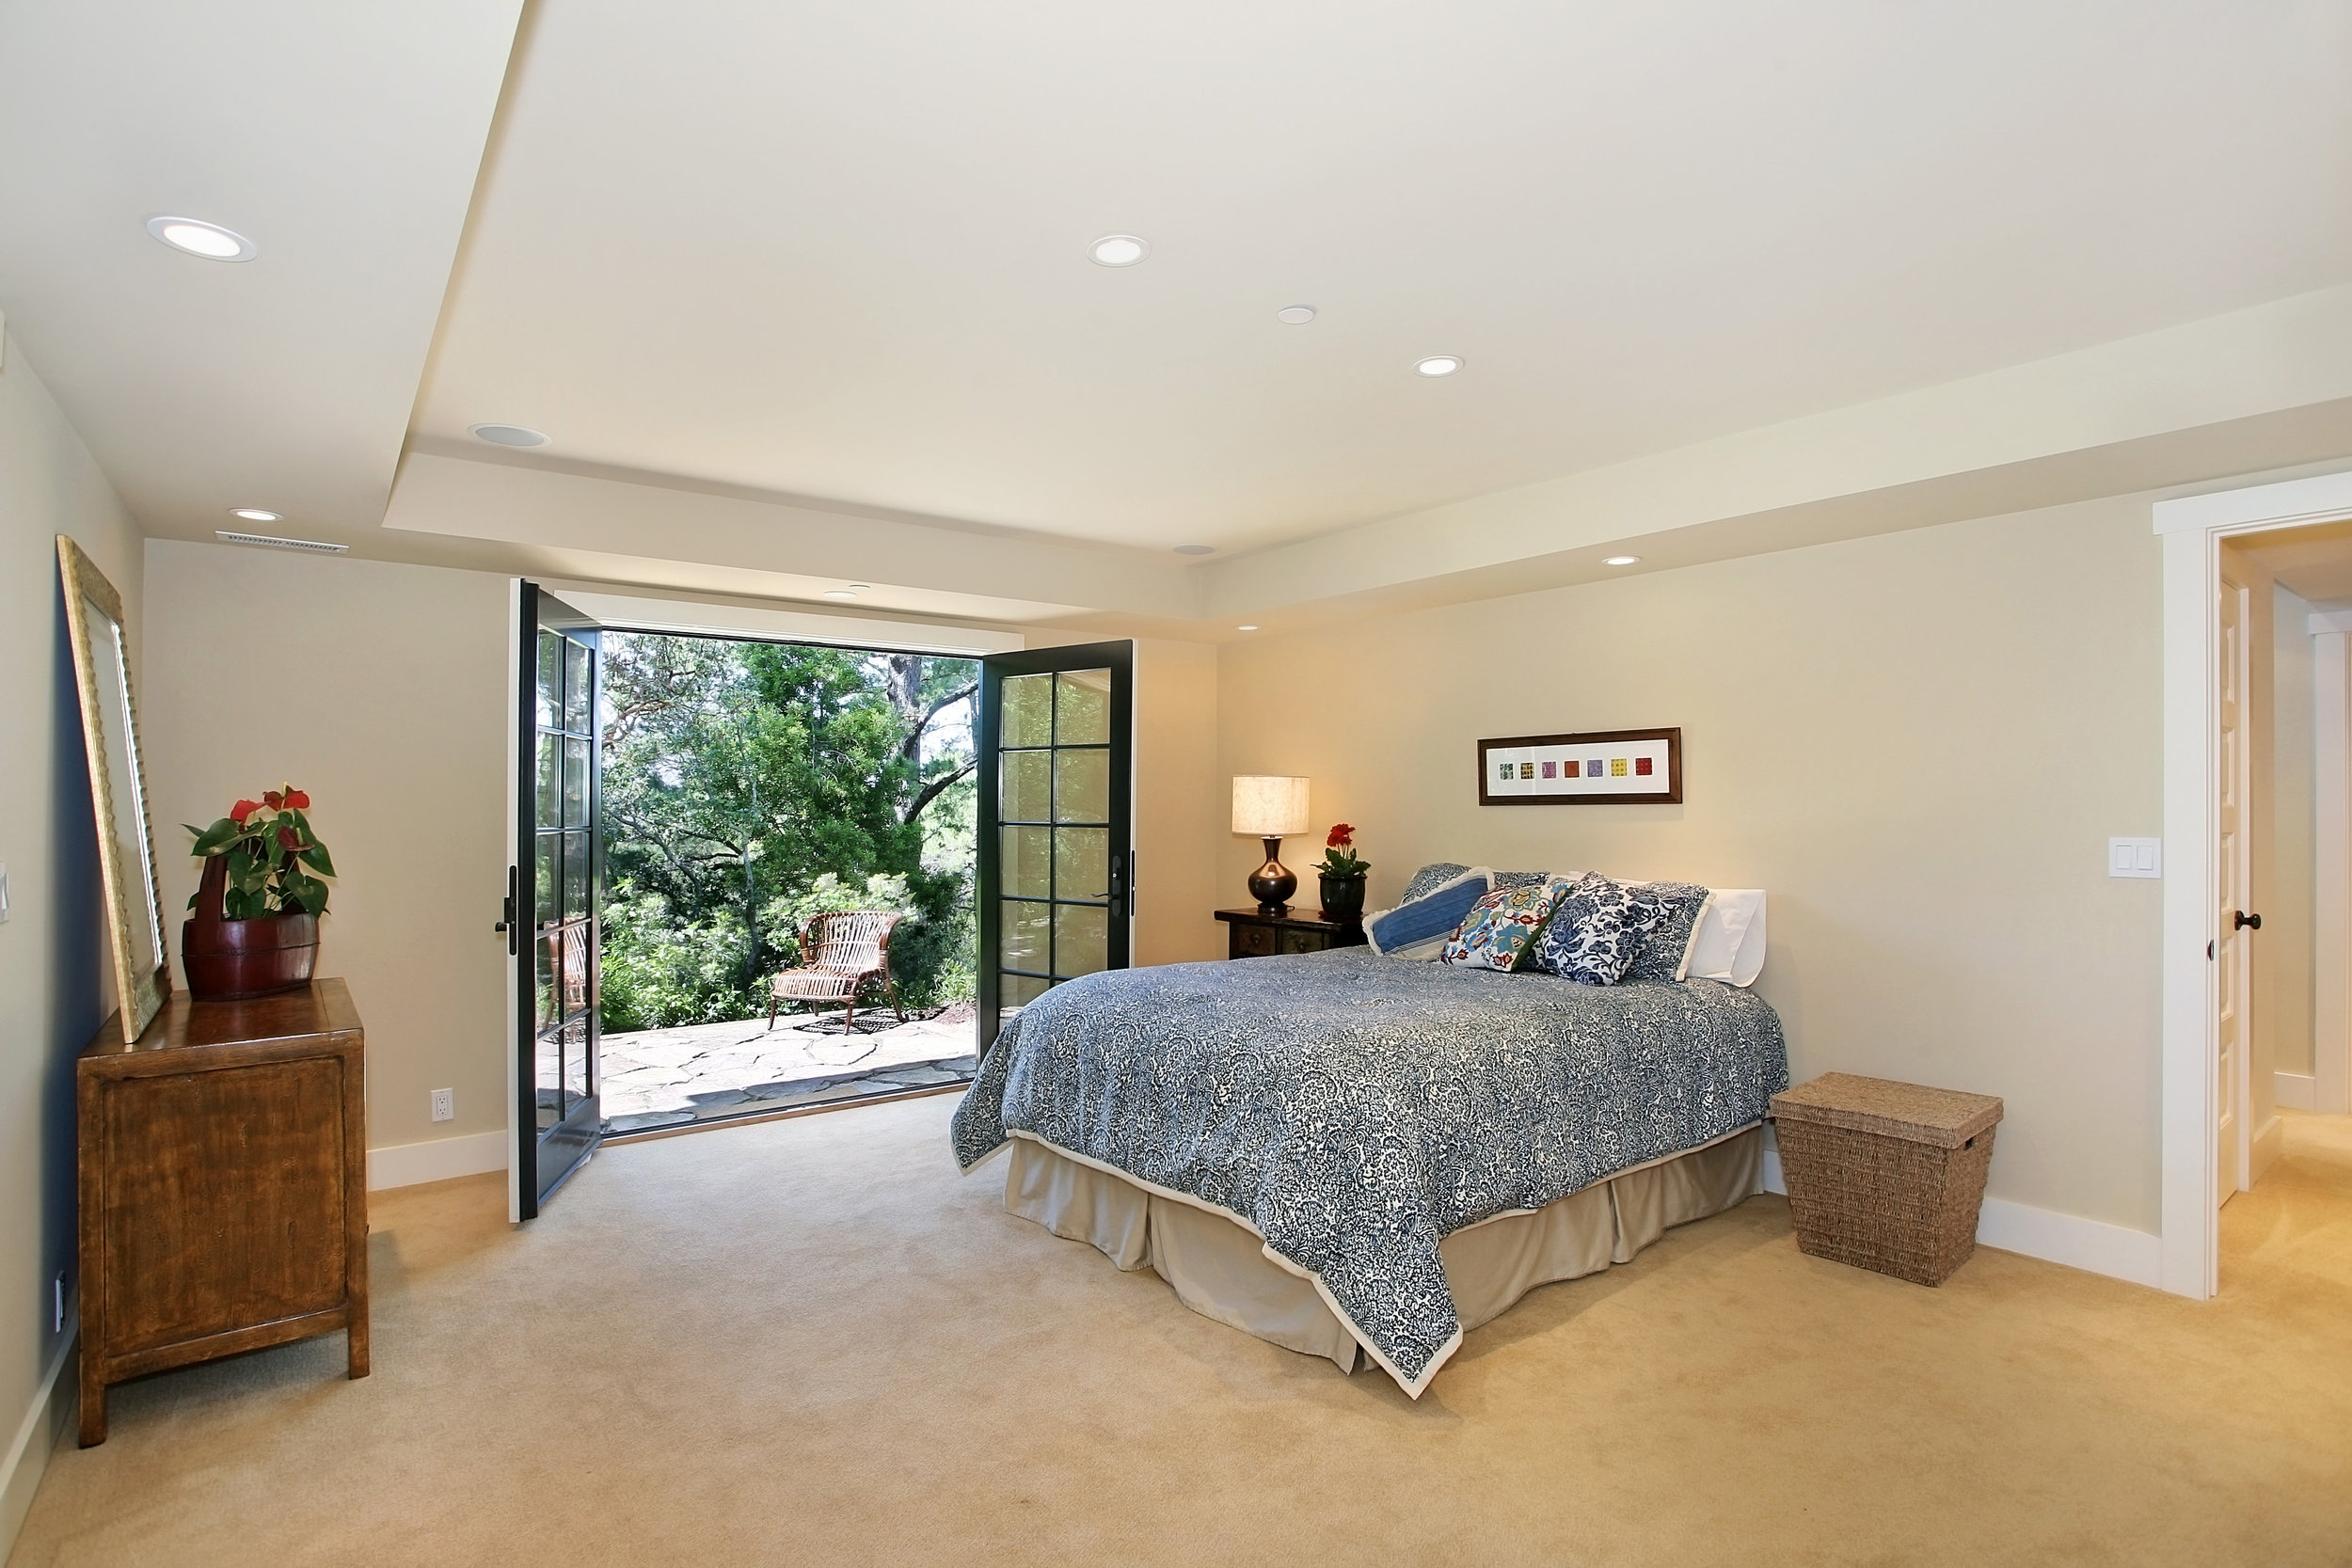 659_Chapman_Dr_guestBedroom.jpg